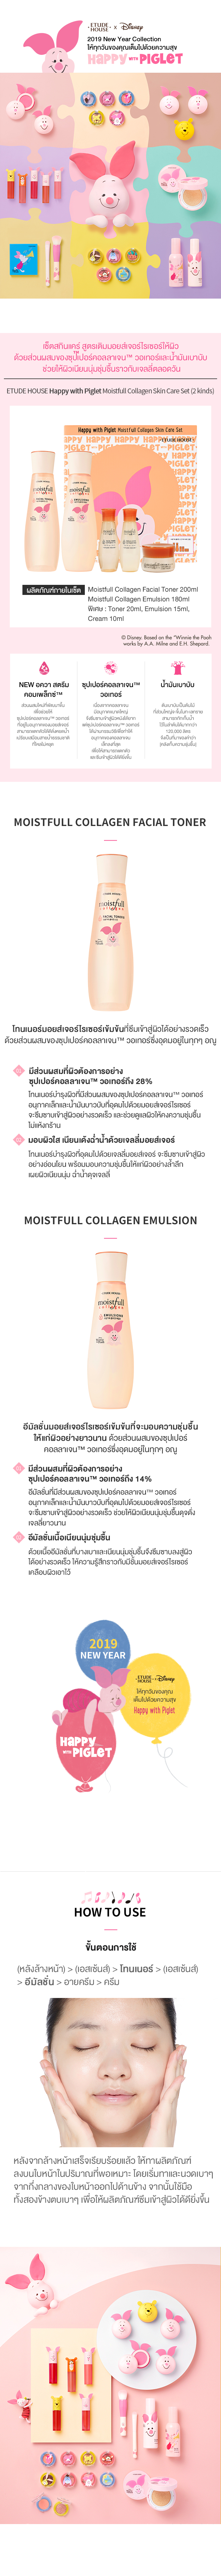 TH1_Happy with Piglet Moistfull Collagen Set